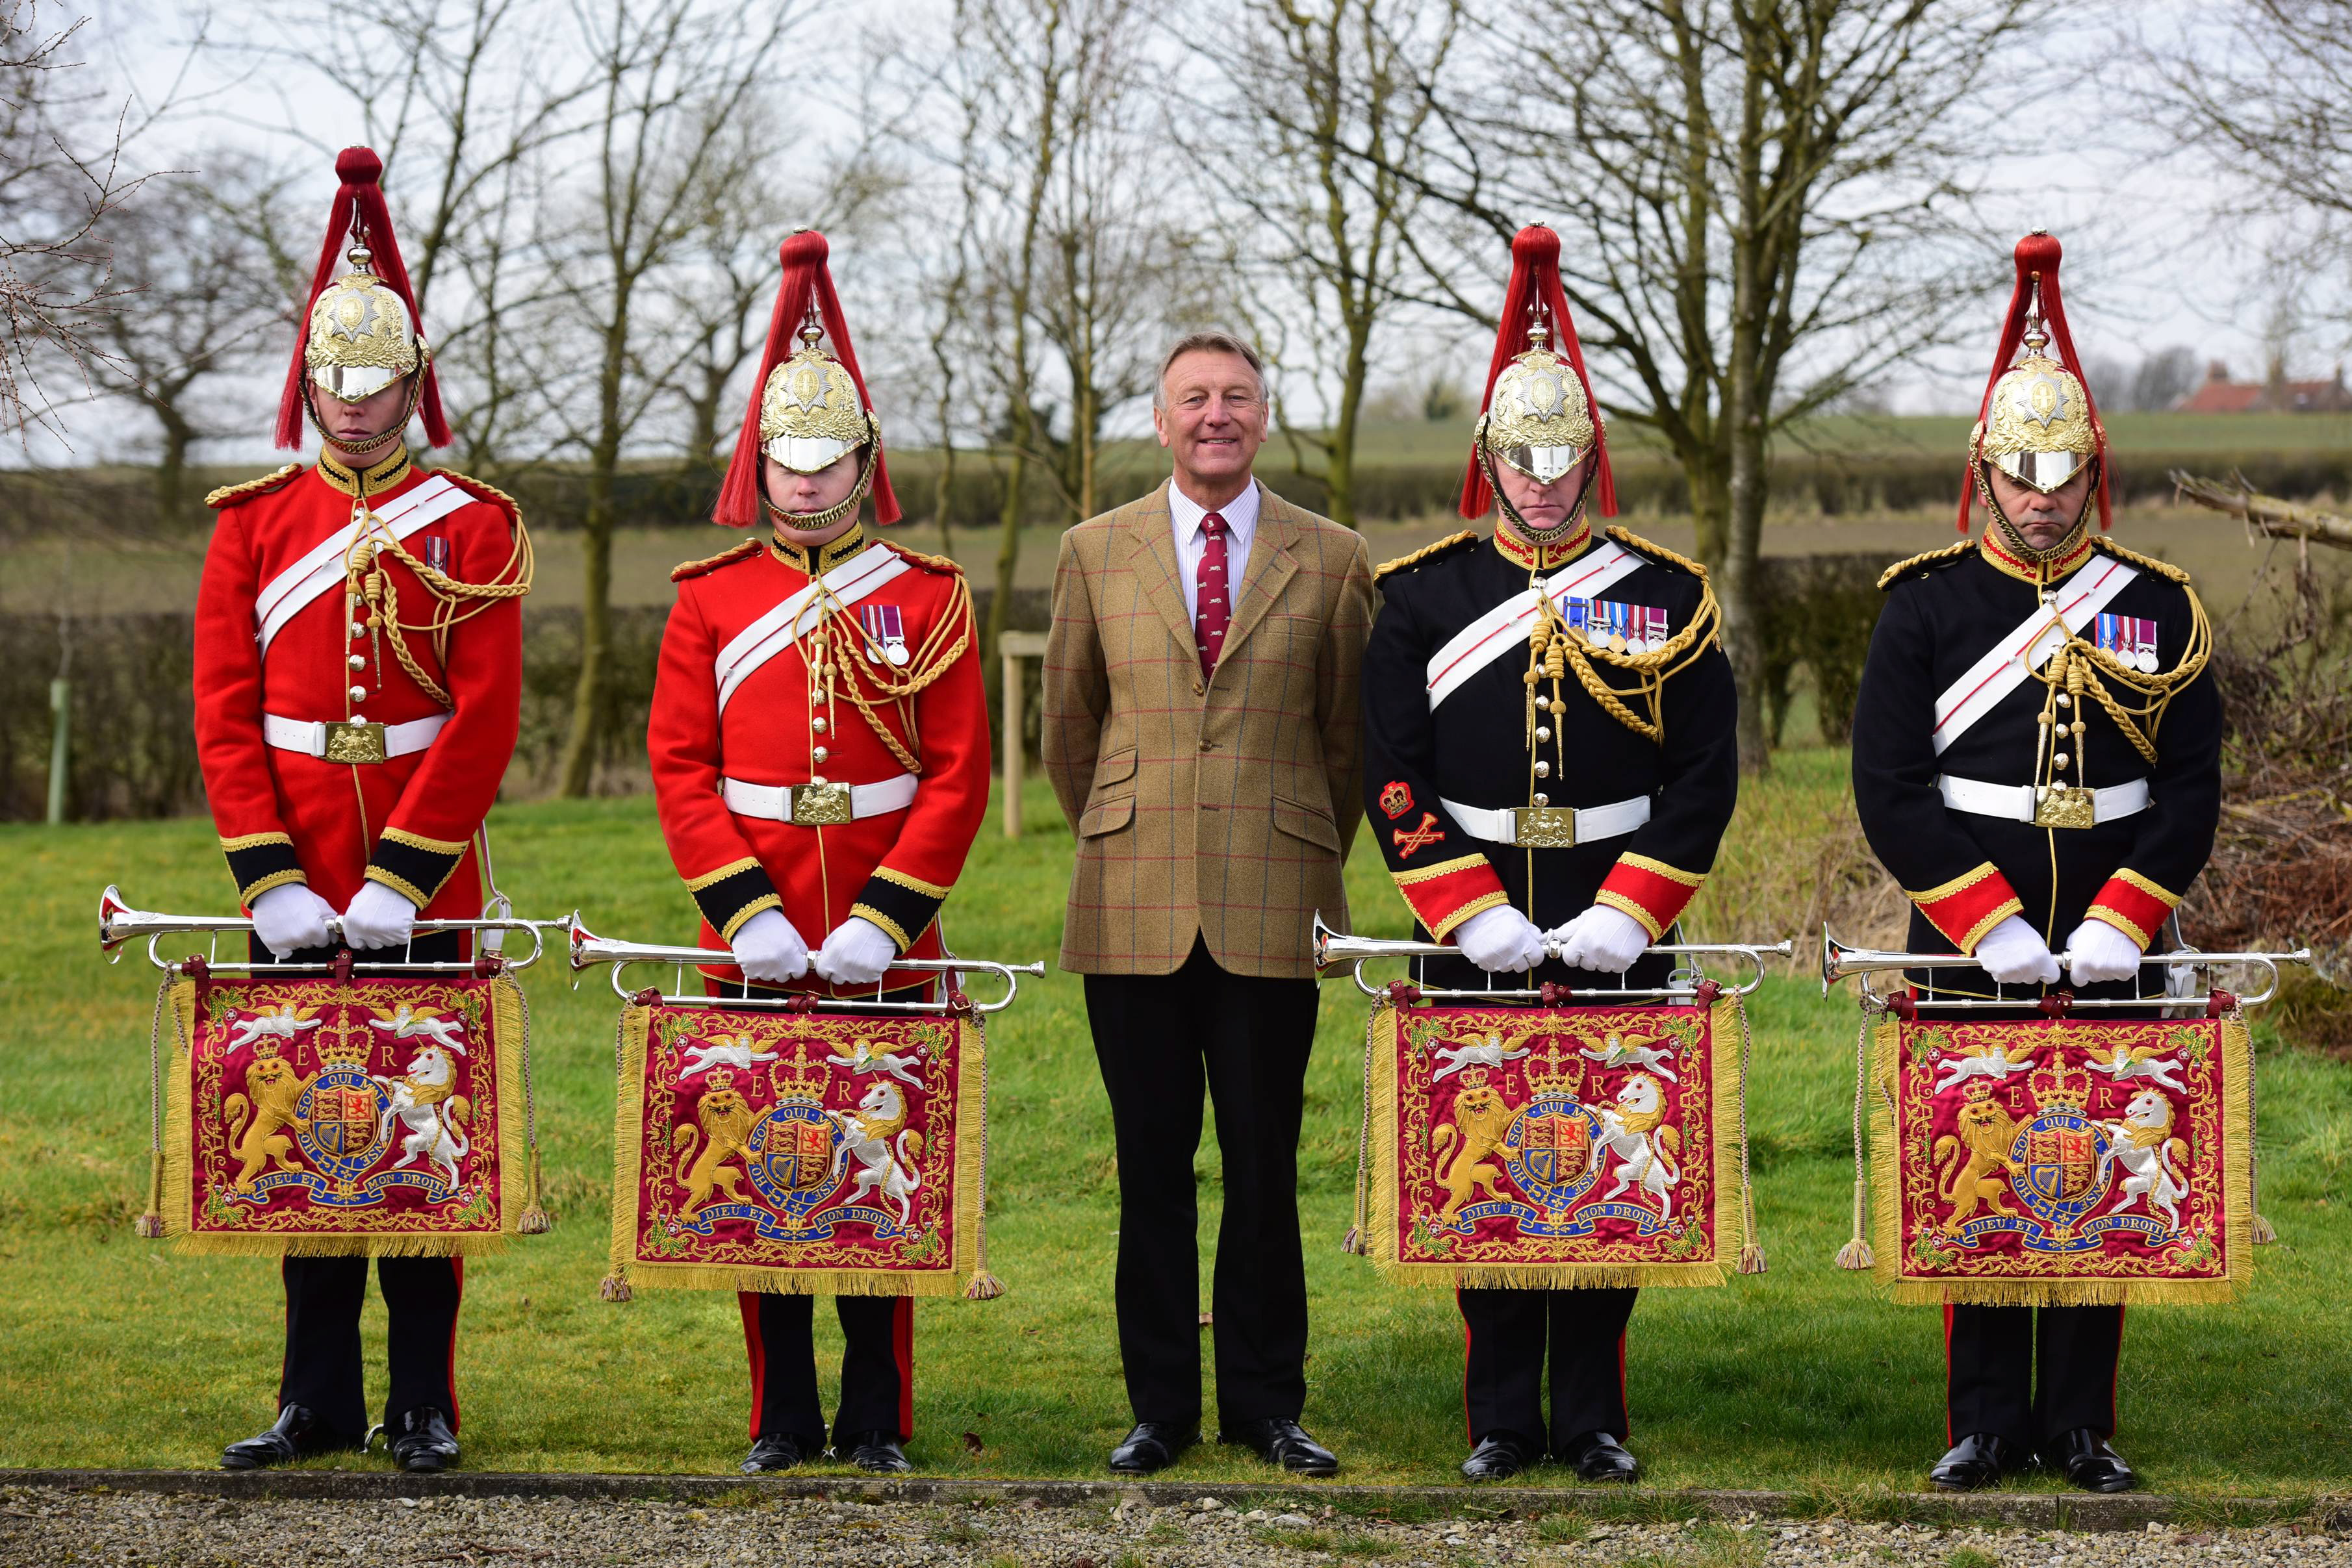 The Brass Behind the Royal Fanfares